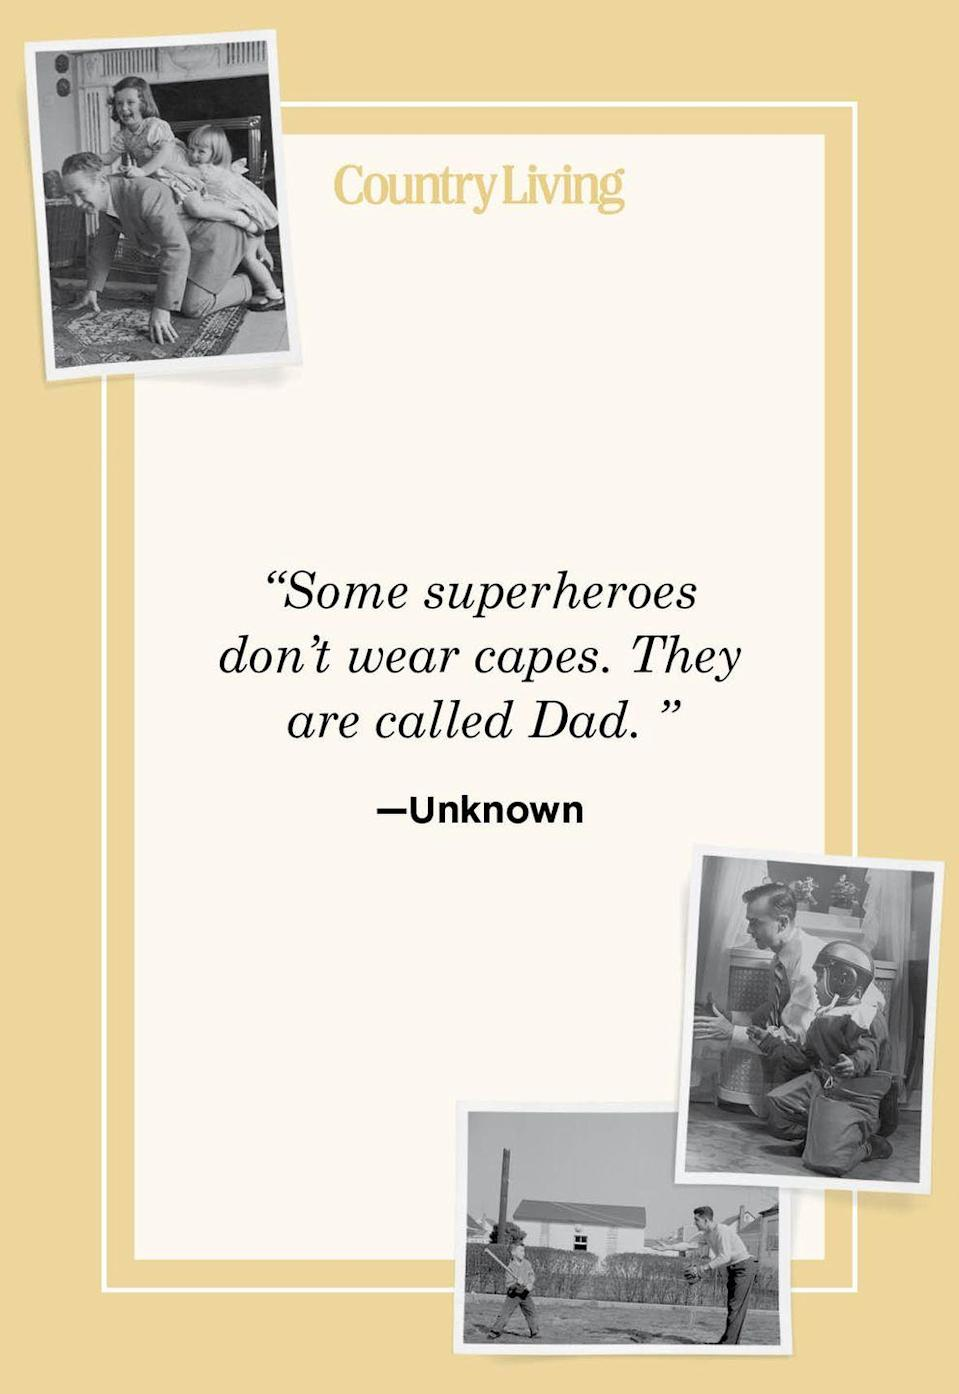 "<p>""Some superheroes don't wear capes. They are called Dad.""</p>"